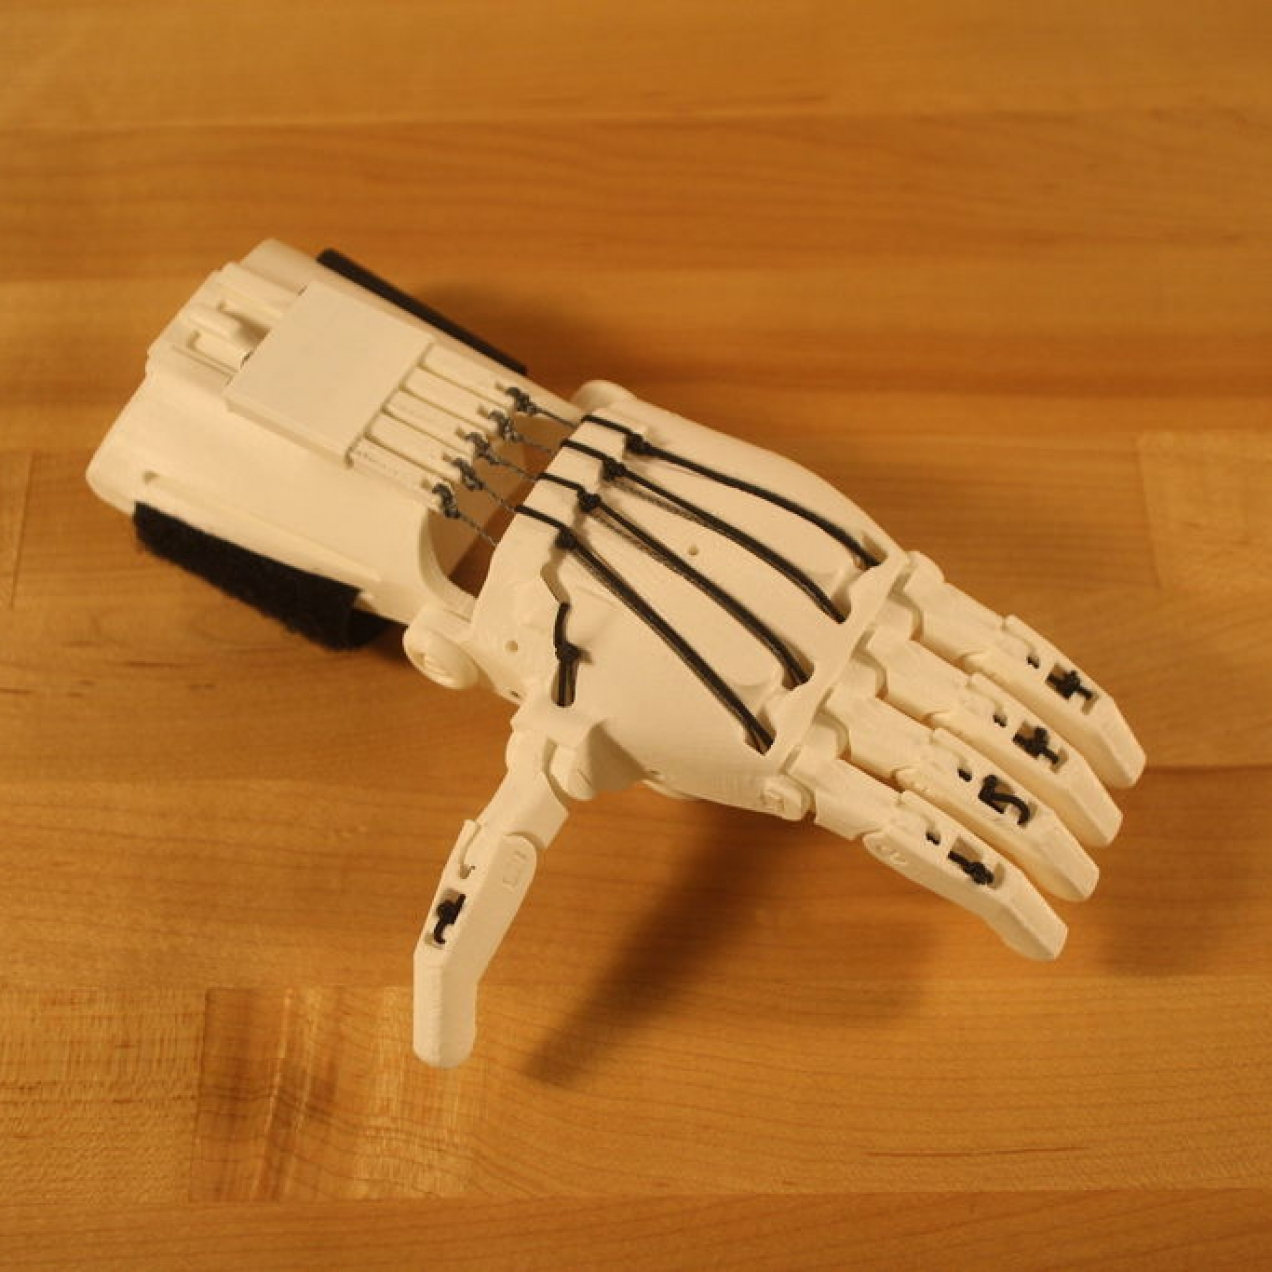 e-NABLE 3D printable designs for hands and arms